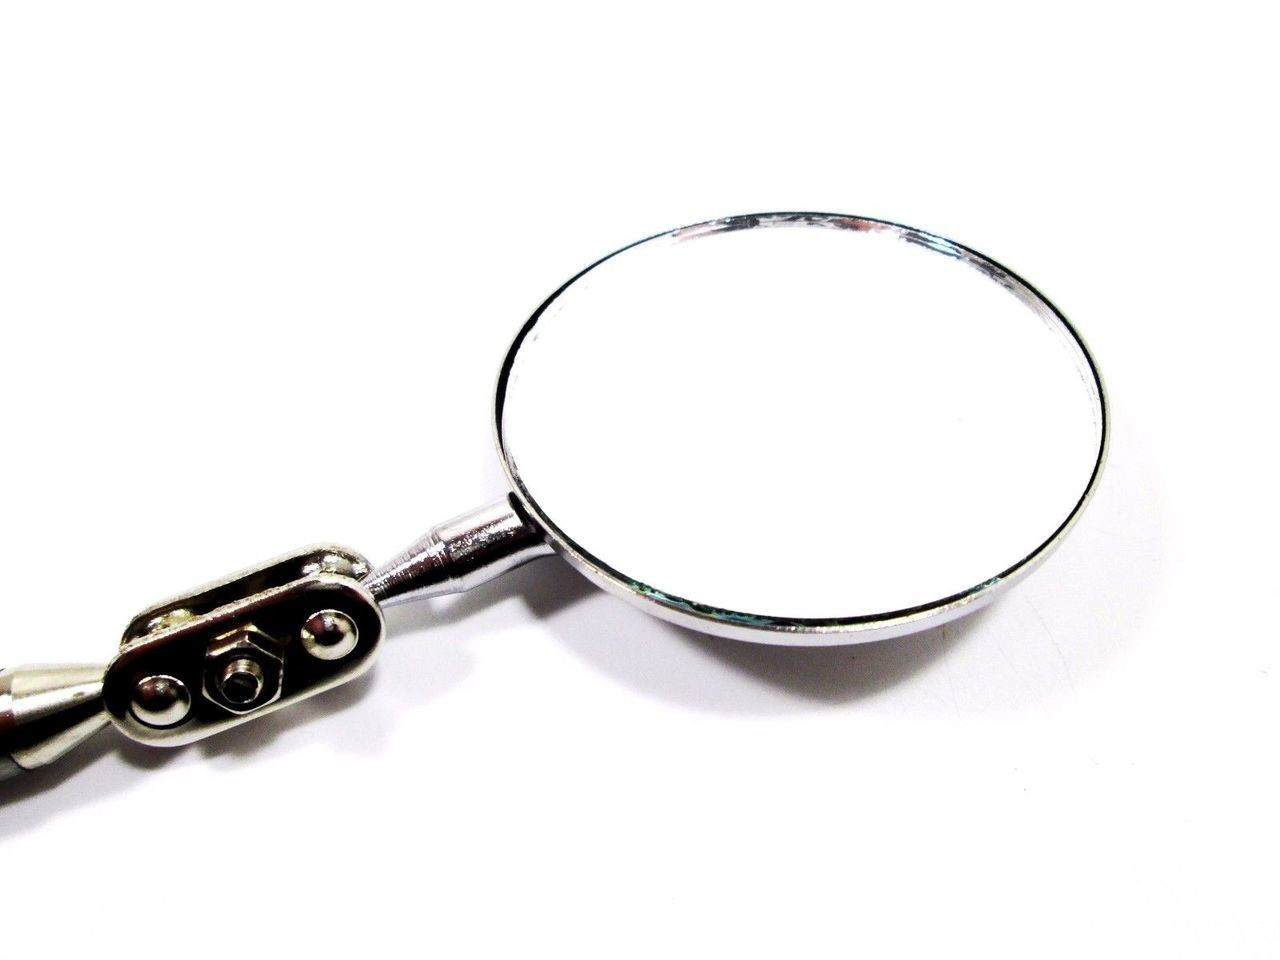 5cm Round Ext Inspection Mirror Telescopic Extending Large Angle